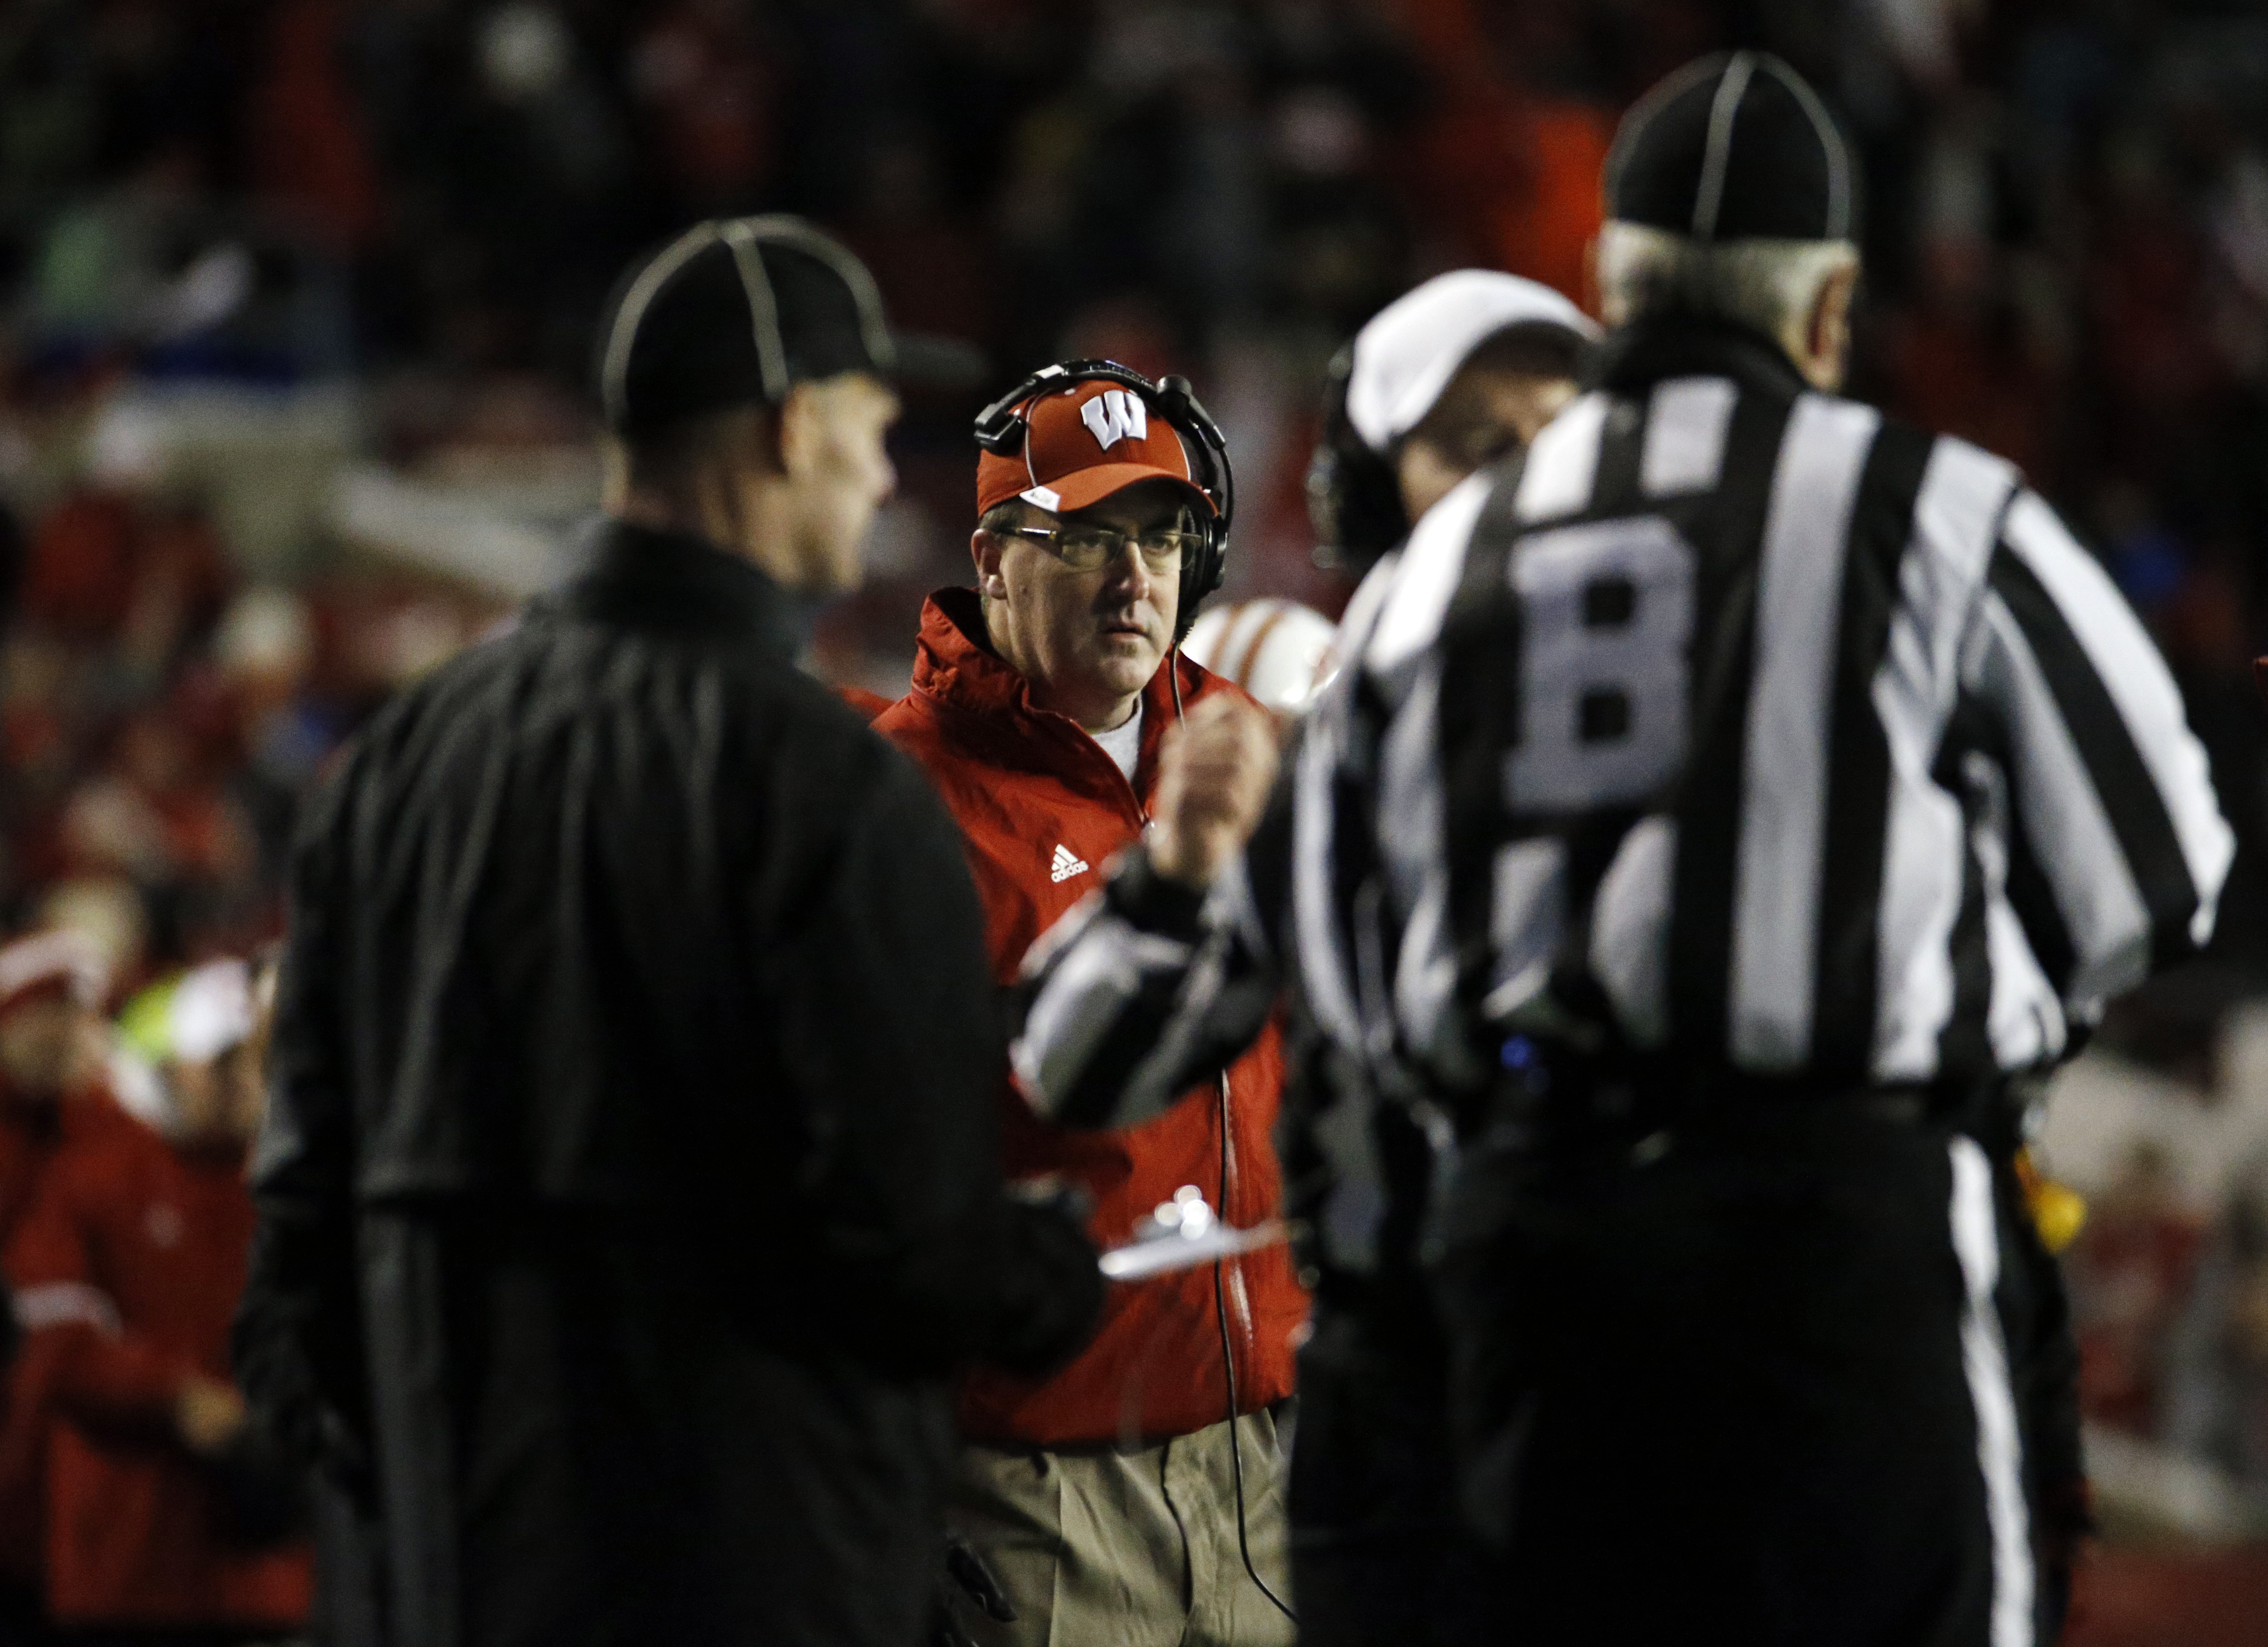 Wisconsin head coach Paul Chryst watches as a play is reviewed by referees during the final seconds of an NCAA college football game against Northwestern Saturday, Nov. 21, 2015, in Madison, Wis. Northwestern won 13-7. (AP Photo/Morry Gash)